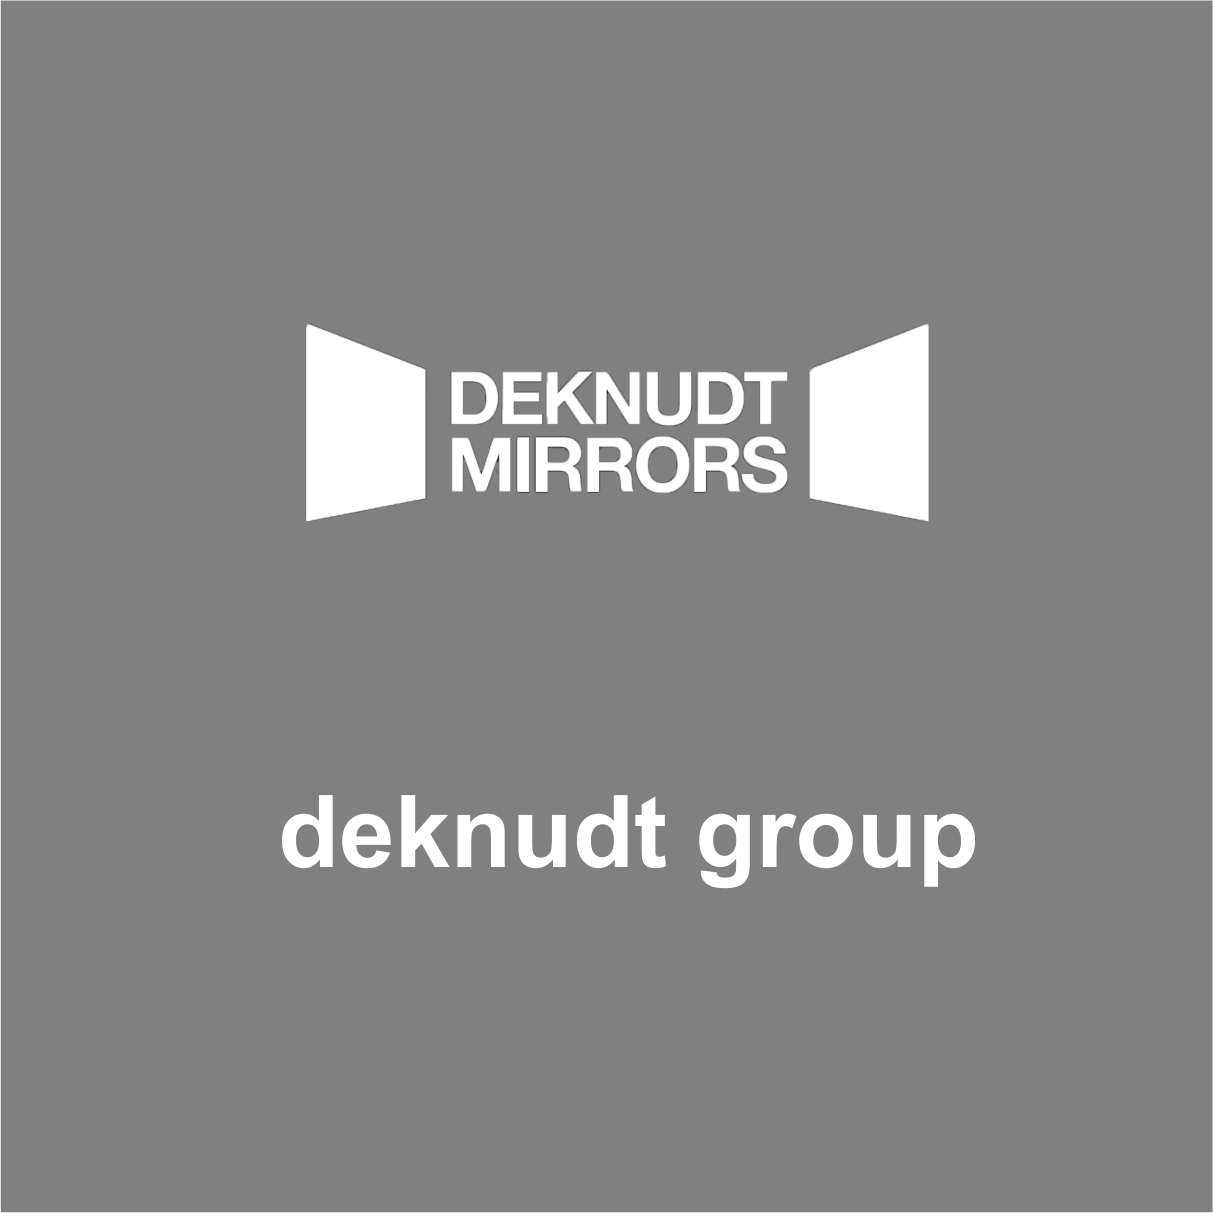 Deknudt Group